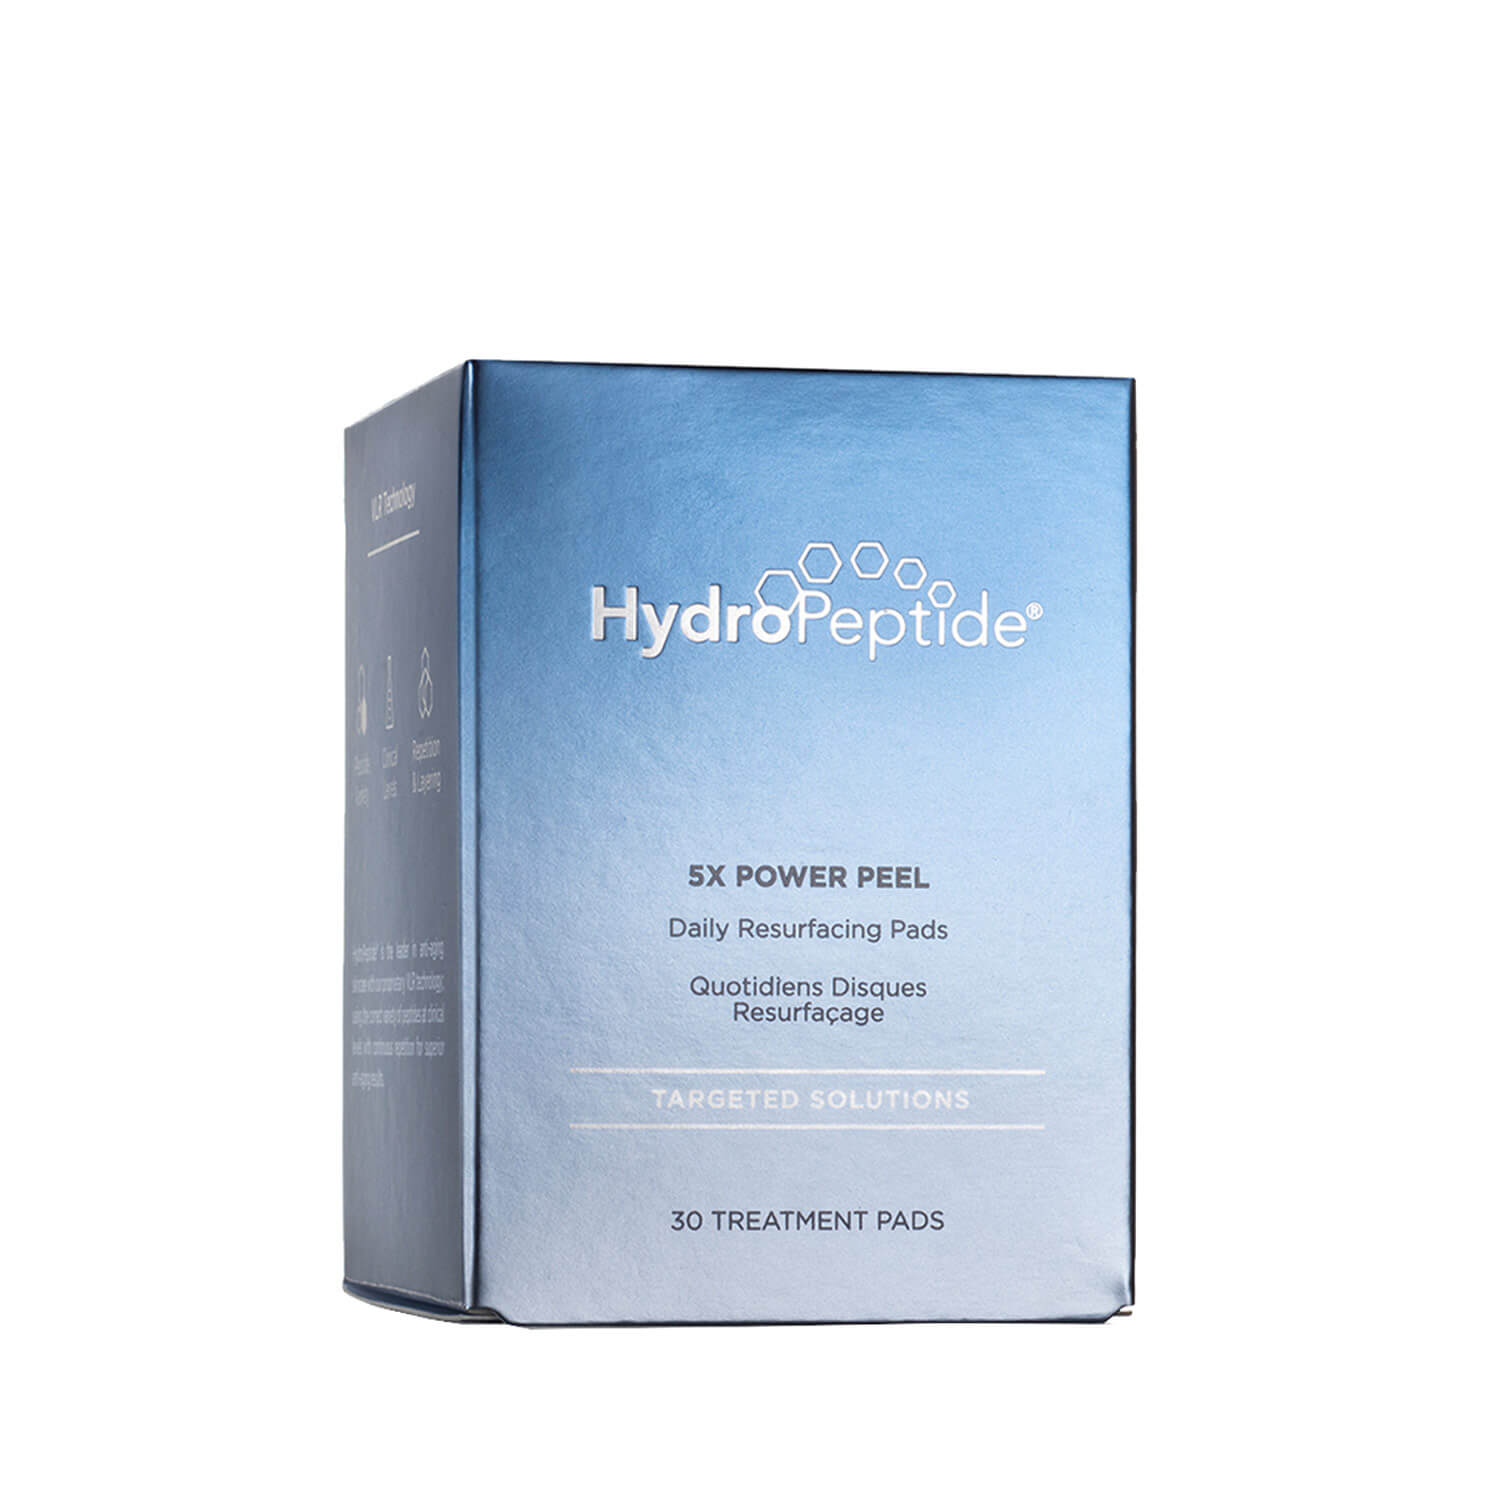 HydroPeptide 5X Power Peel Daily Resurfacing Pads